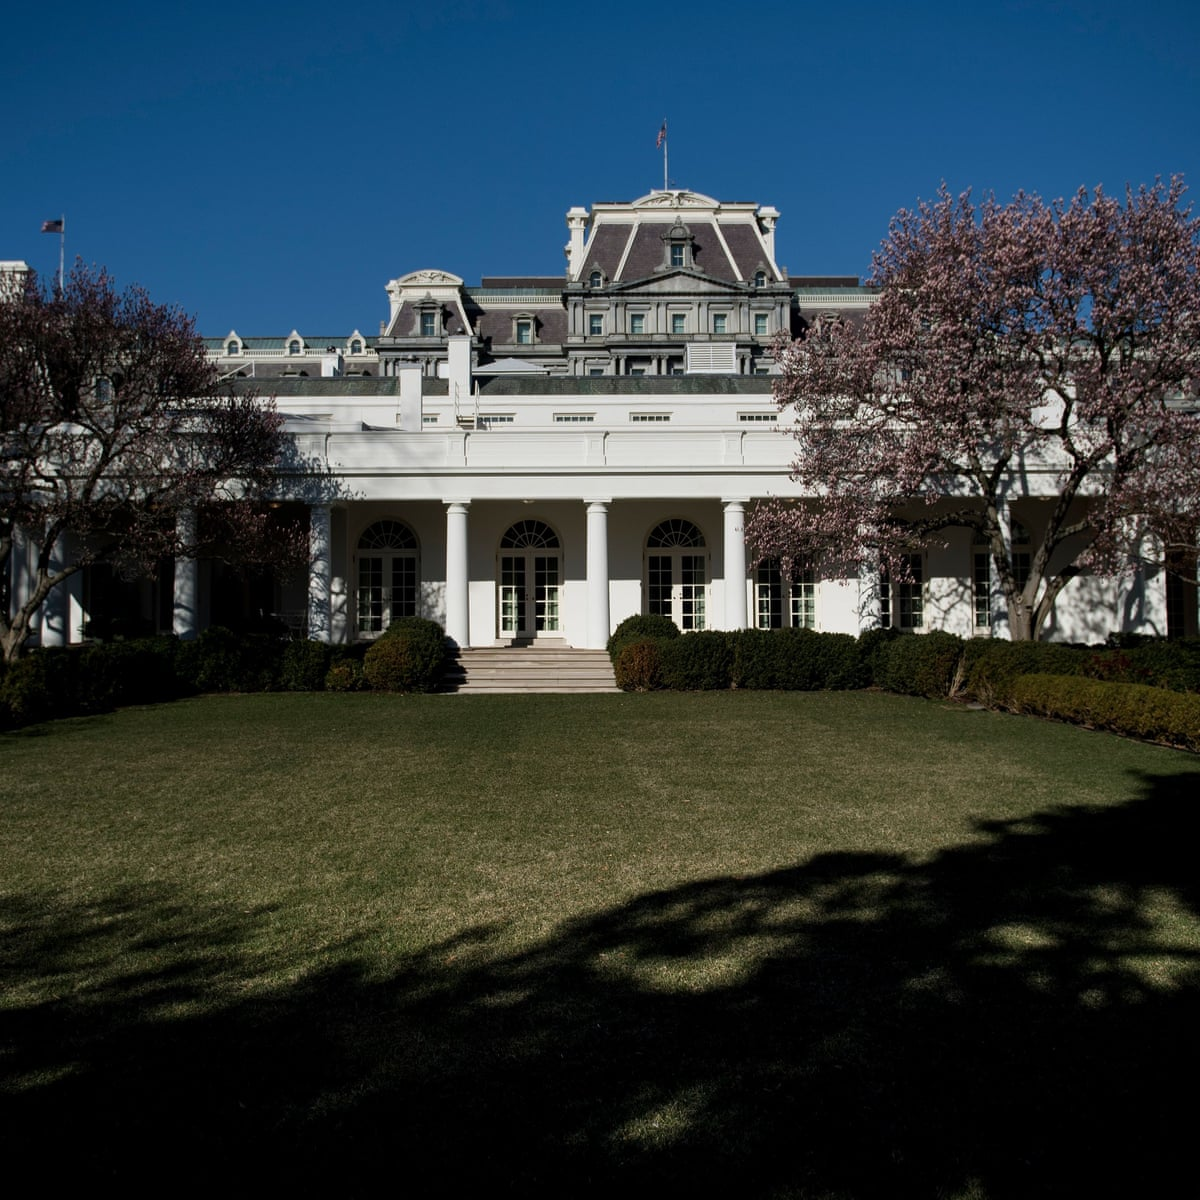 Does Melania Trump S Revamp Of The White House Rose Garden Have A Hidden Agenda Arwa Mahdawi Opinion The Guardian